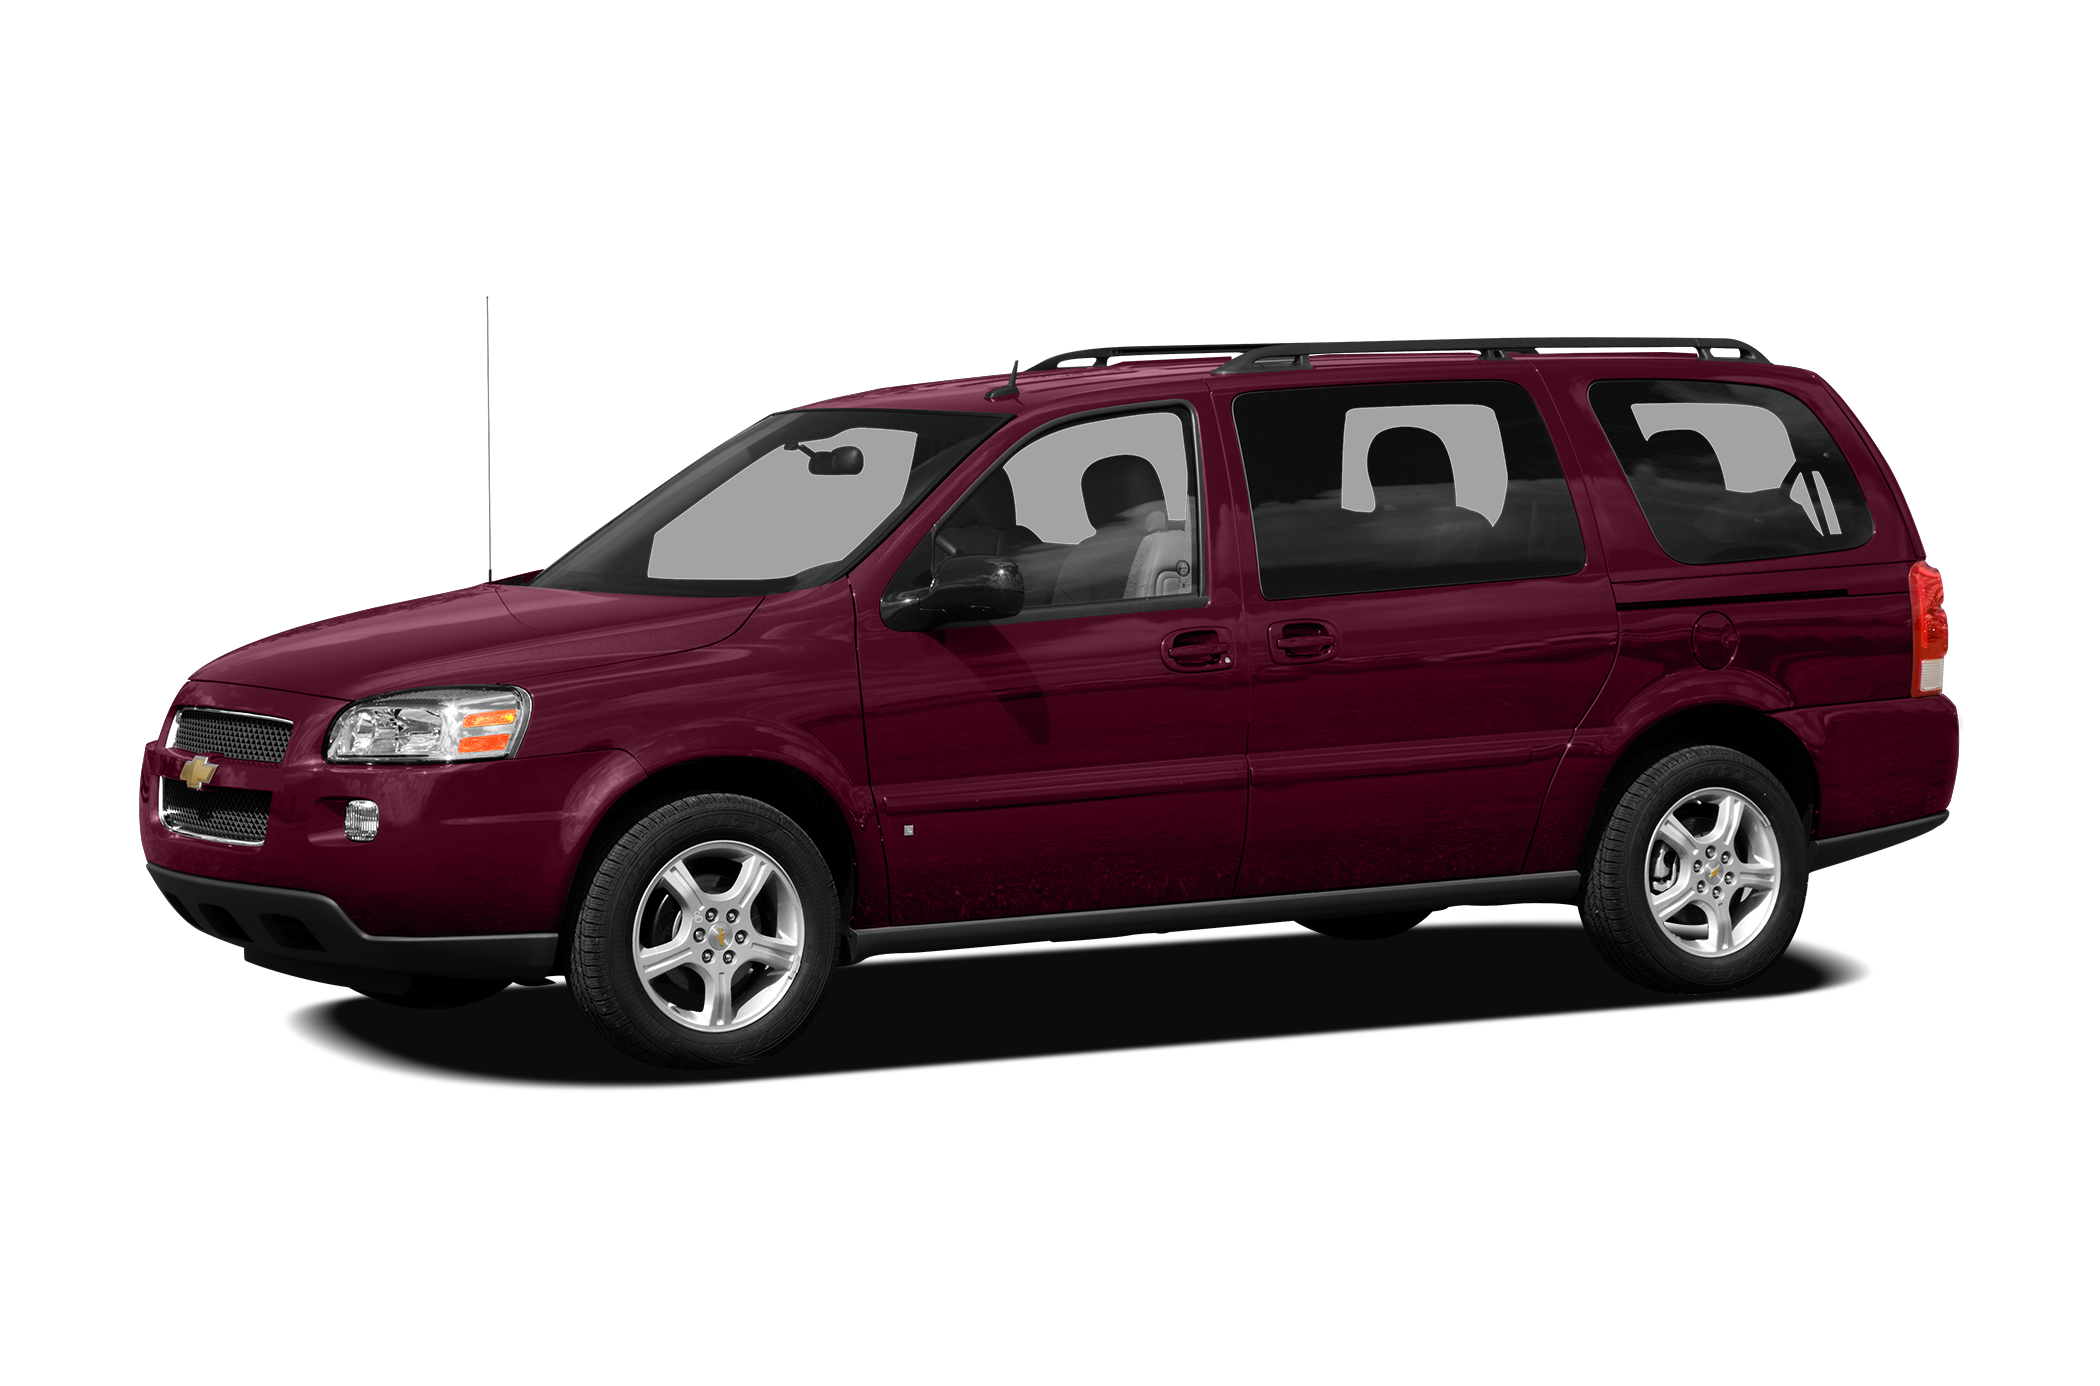 2008 Chevrolet Uplander Specs and Features  US News